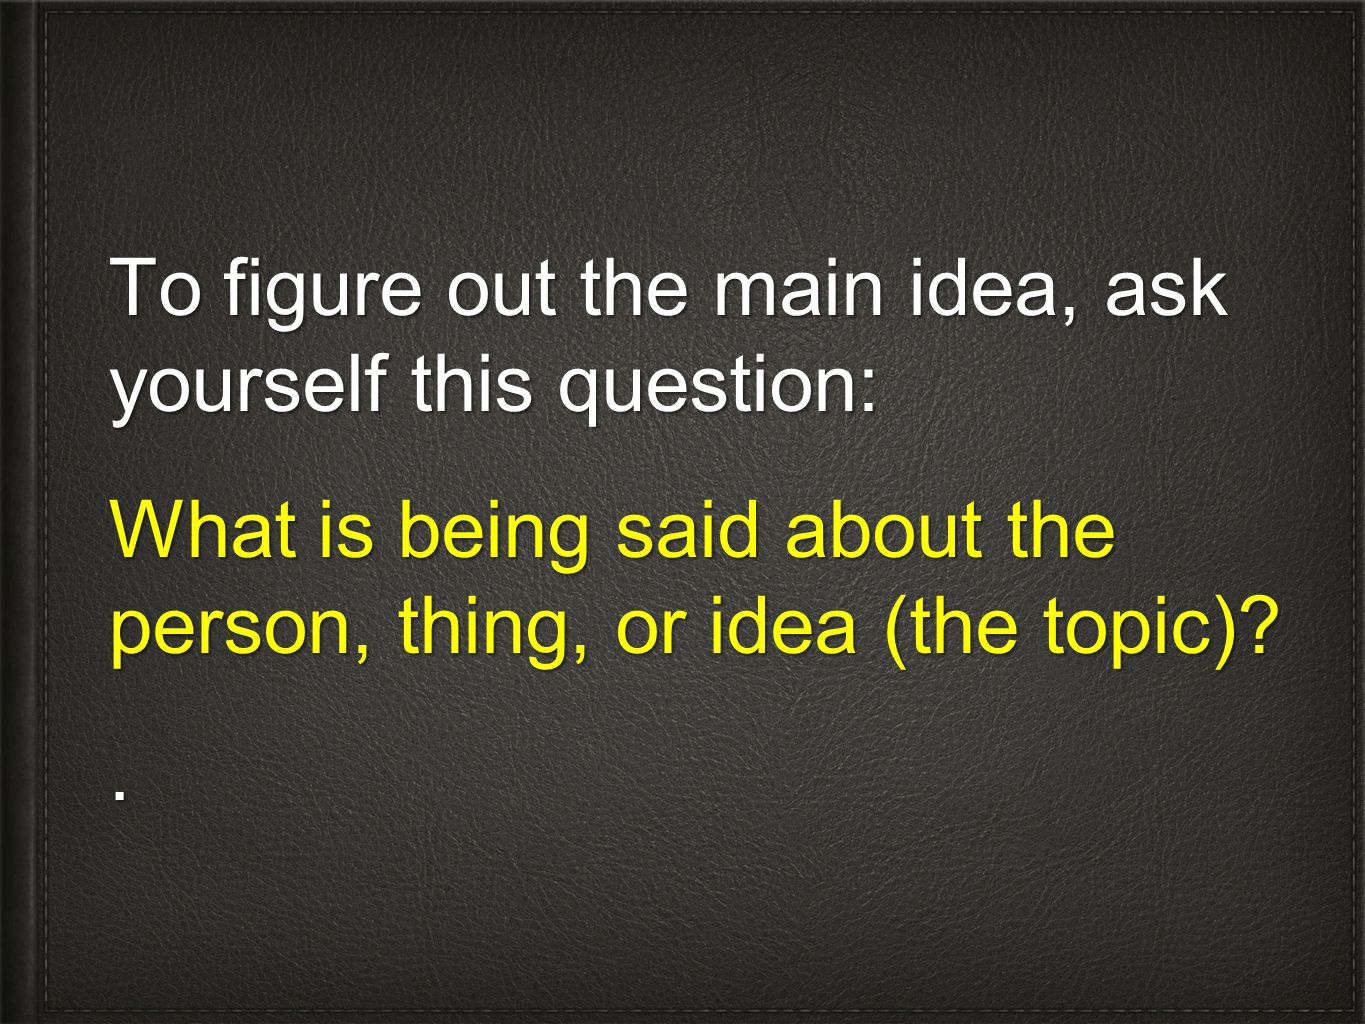 To figure out the main idea, ask yourself this question: What is being said about the person, thing, or idea (the topic) .